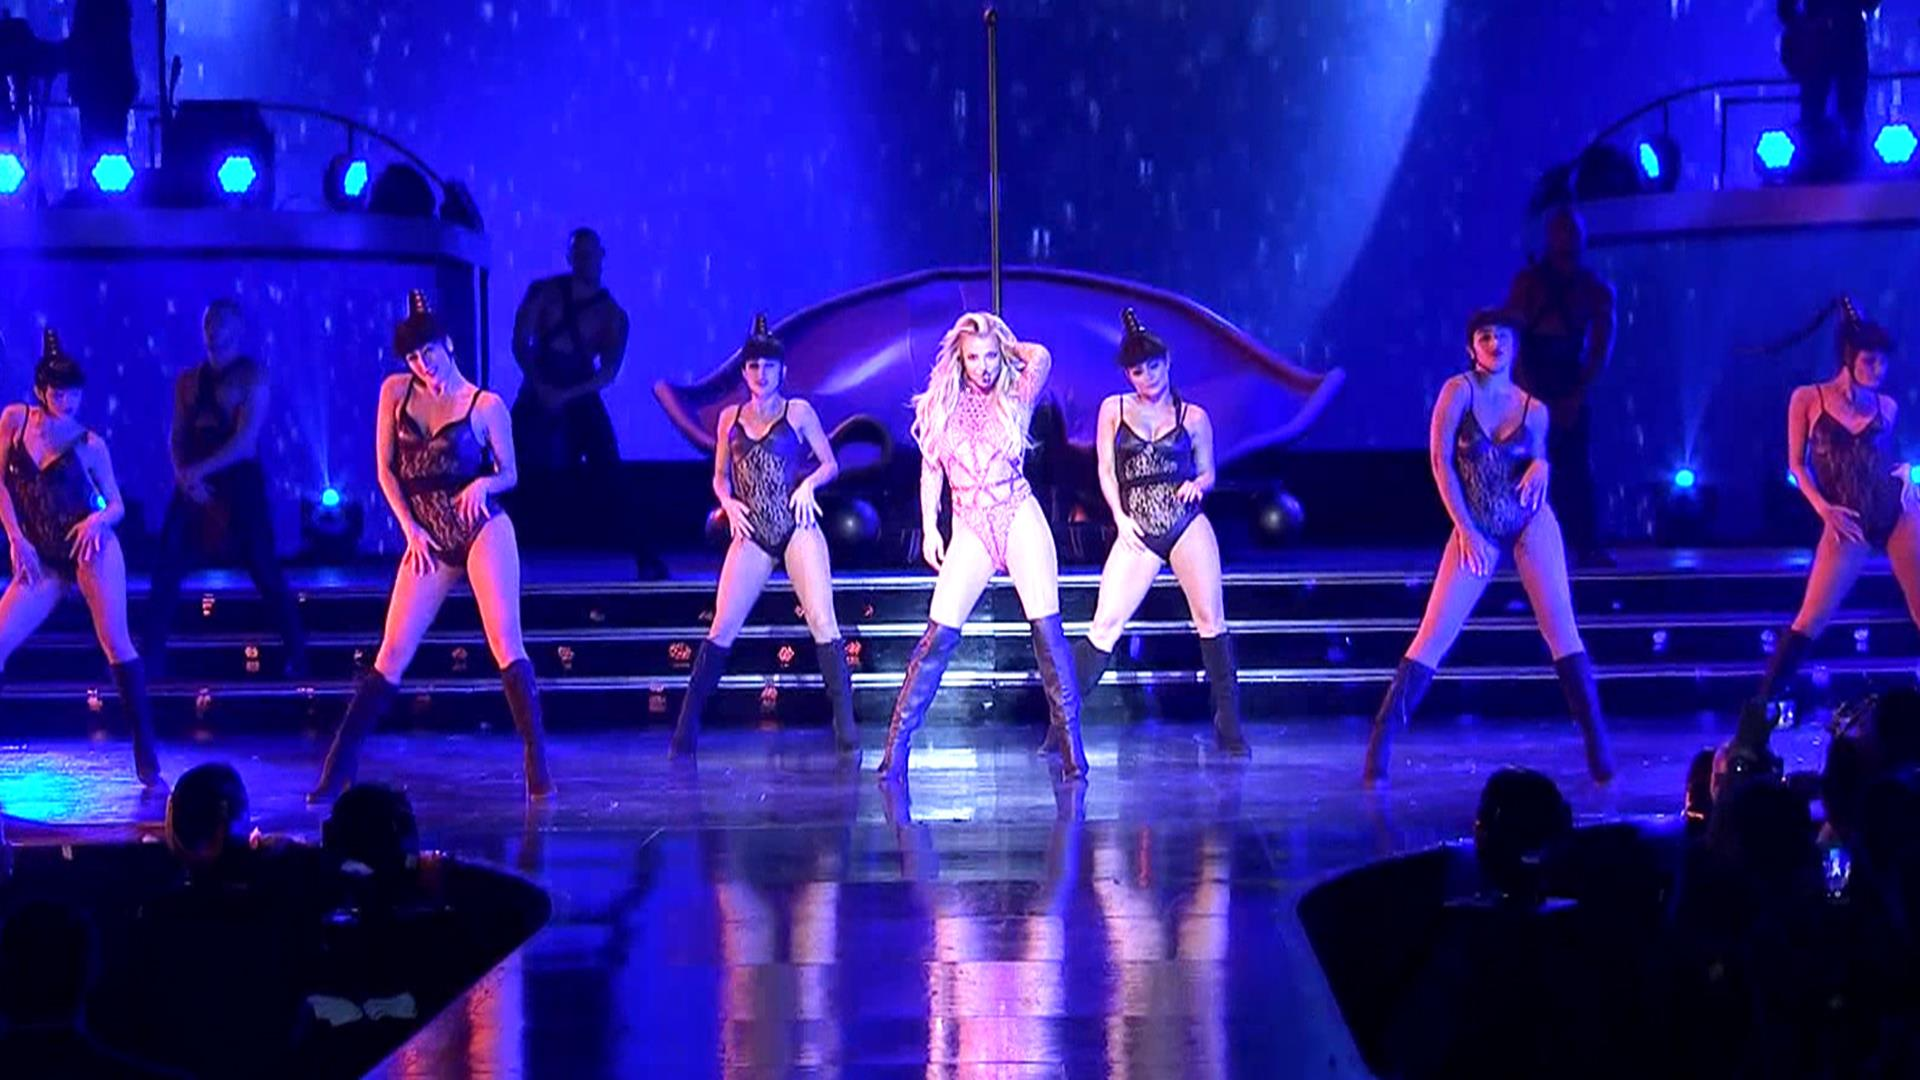 Watch Britney Spears perform 'Make Me…' on TODAY - TODAY.com